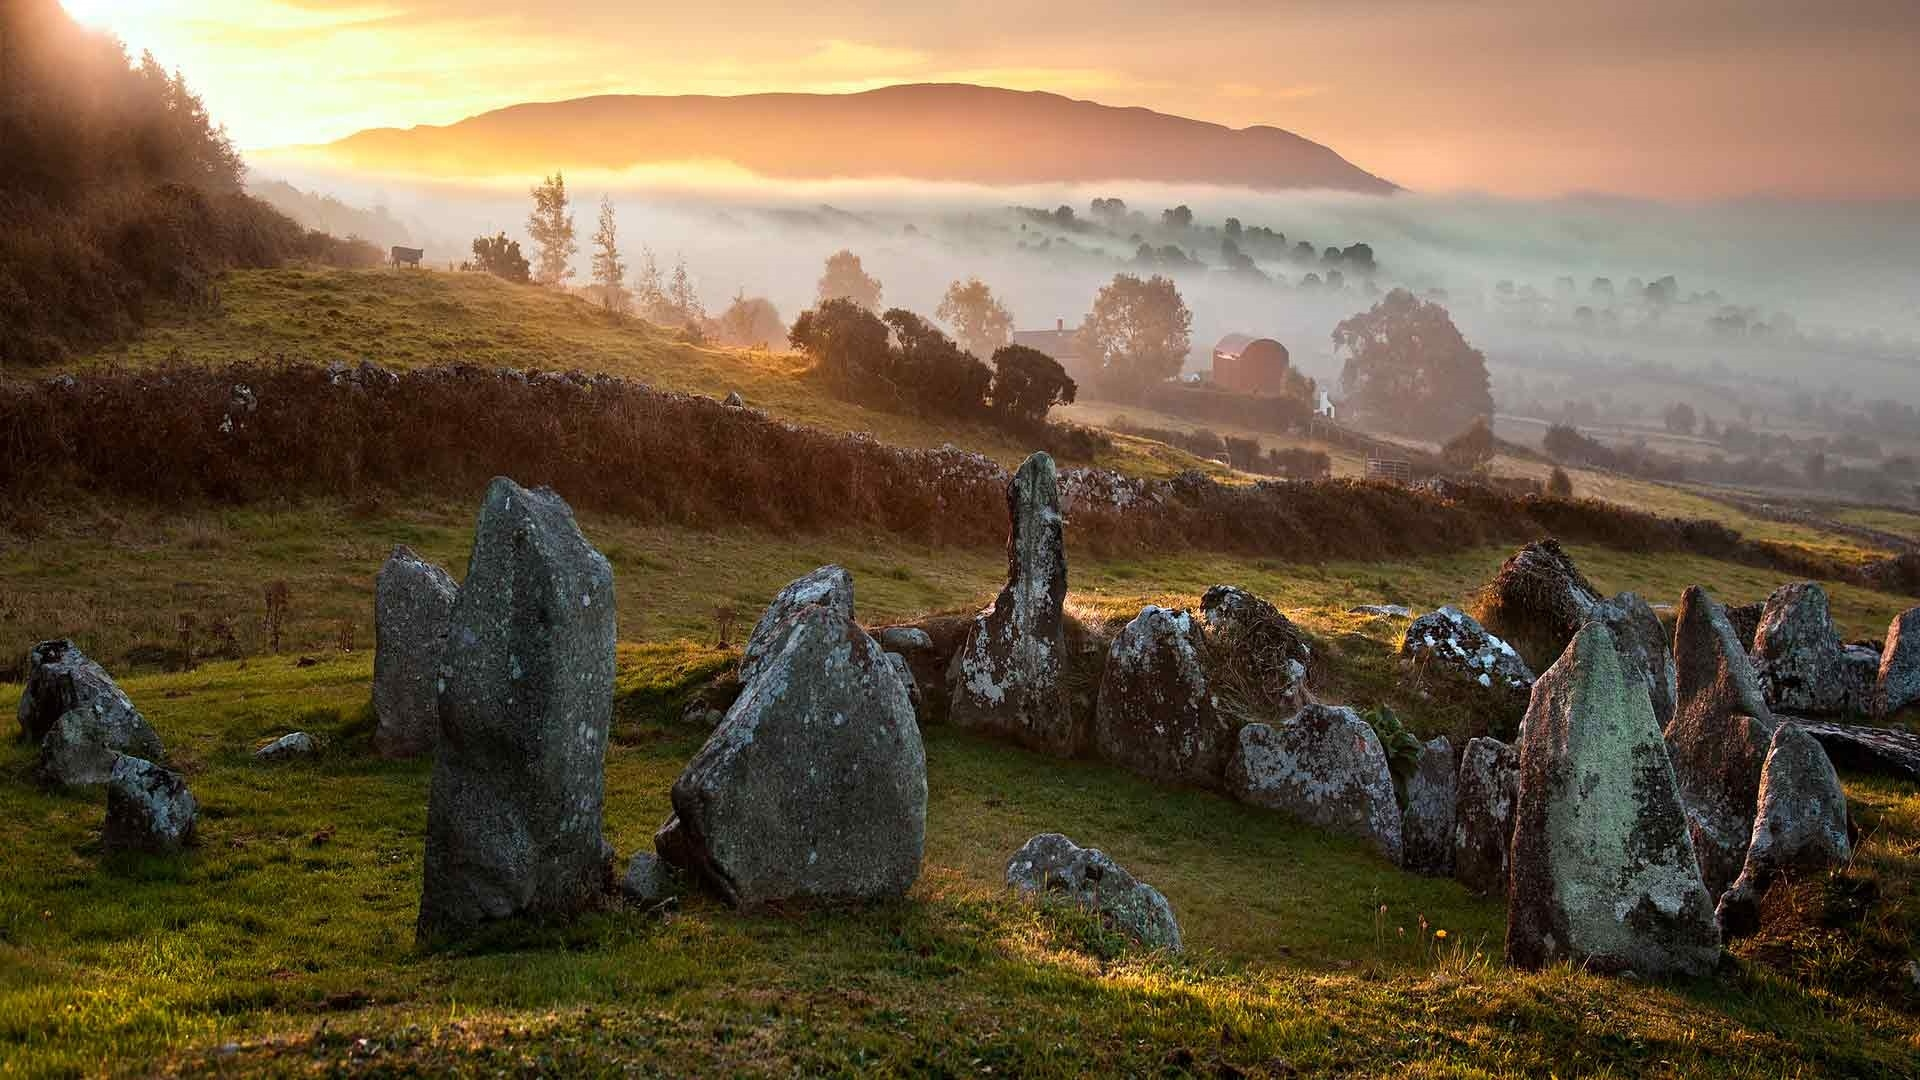 Stone Circle wallpaper for pc